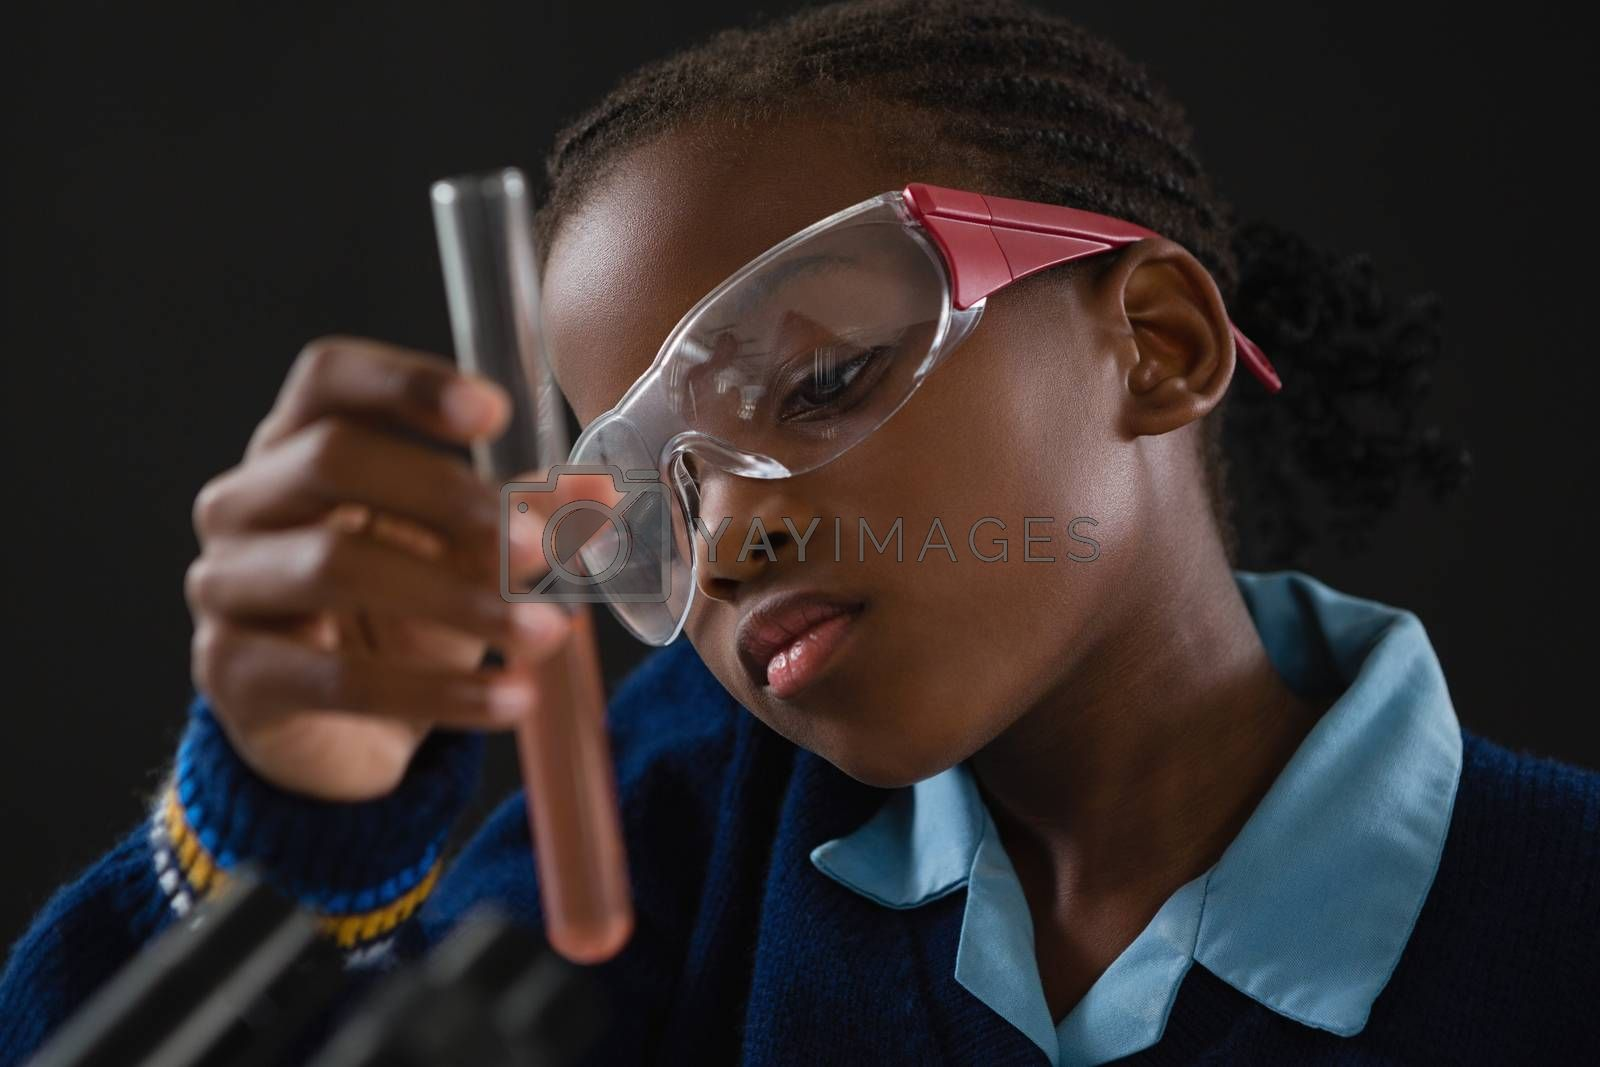 Schoolgirl doing a chemical experiment against black background by Wavebreakmedia